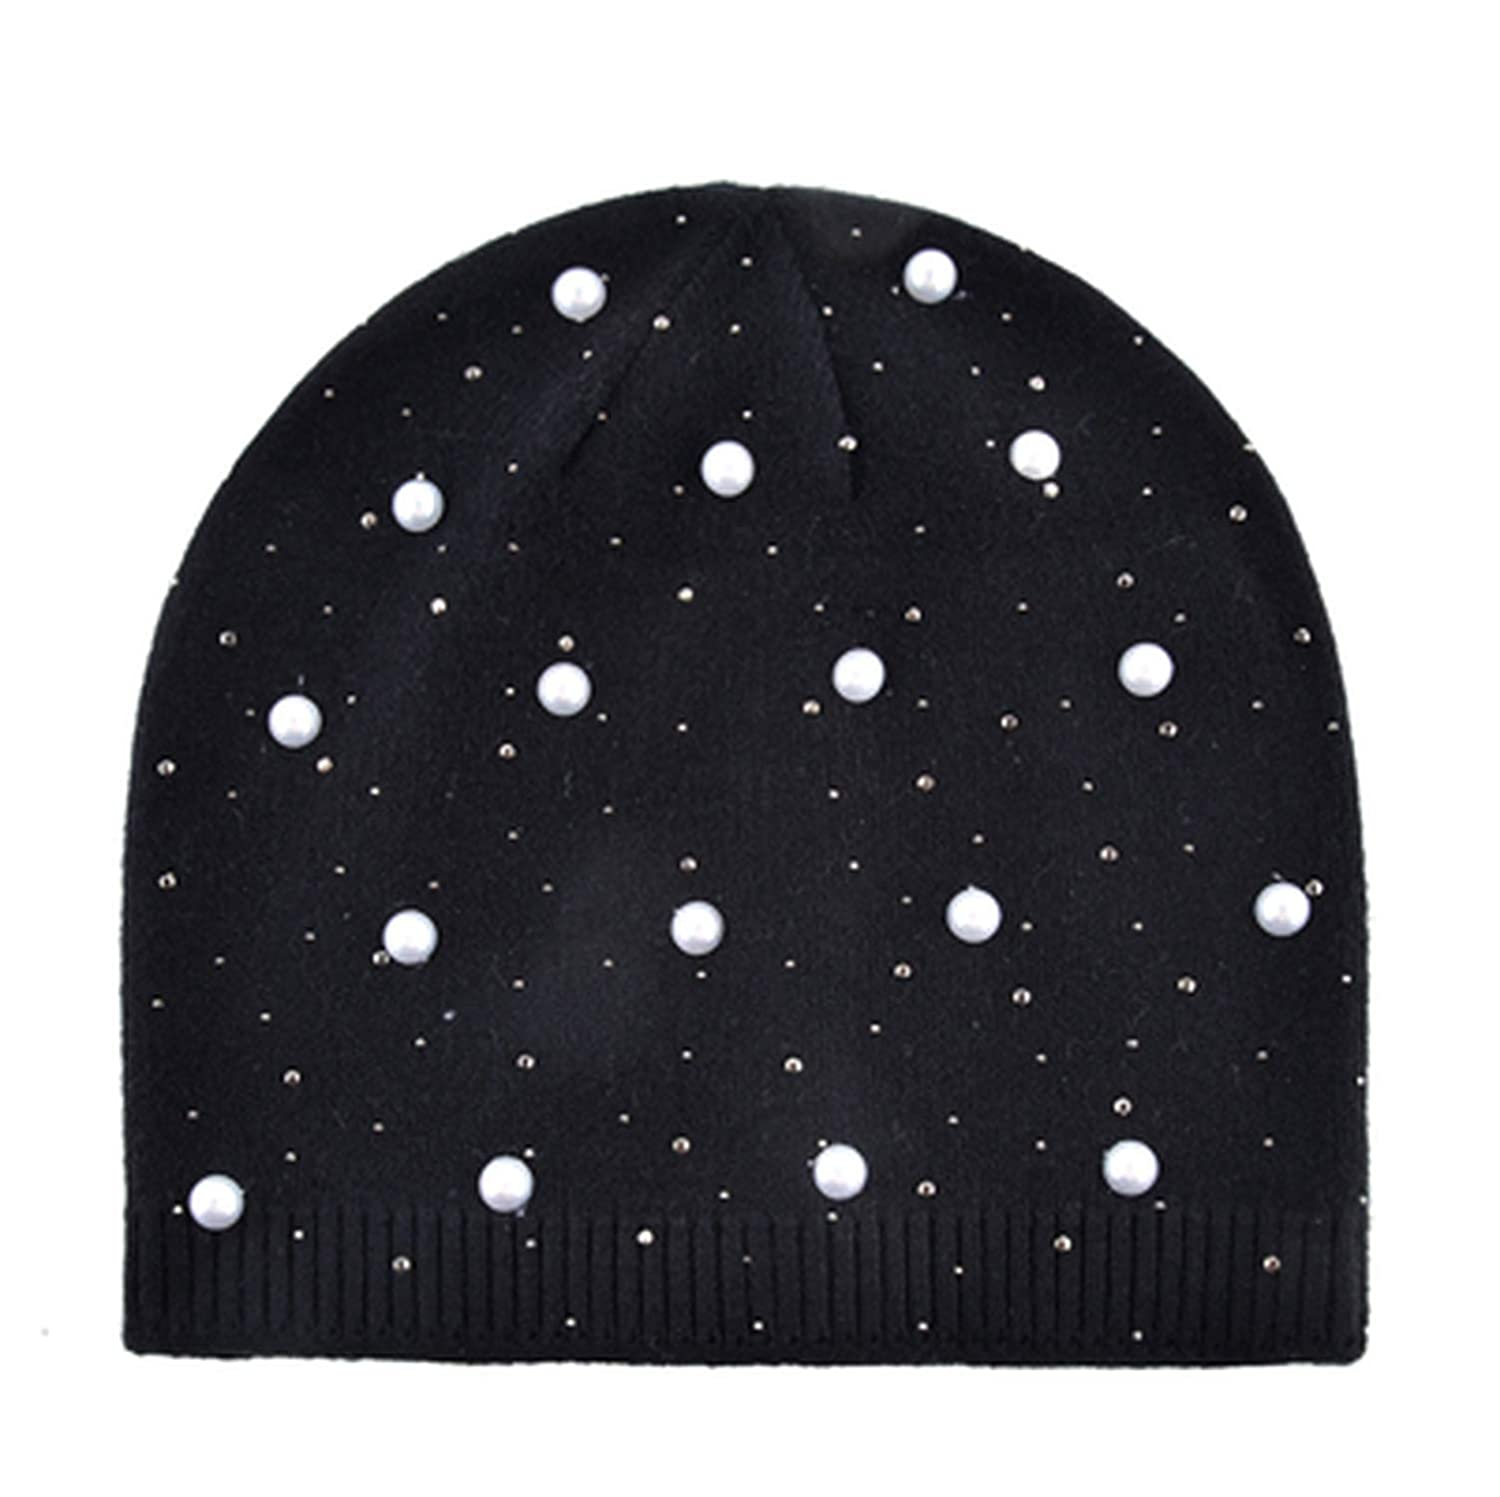 ANDERDM Winter Knitted Beanie Women Fashion Rhinestone Pearls Knitting Hats Ladies Female Solid Color Casual Bonnet